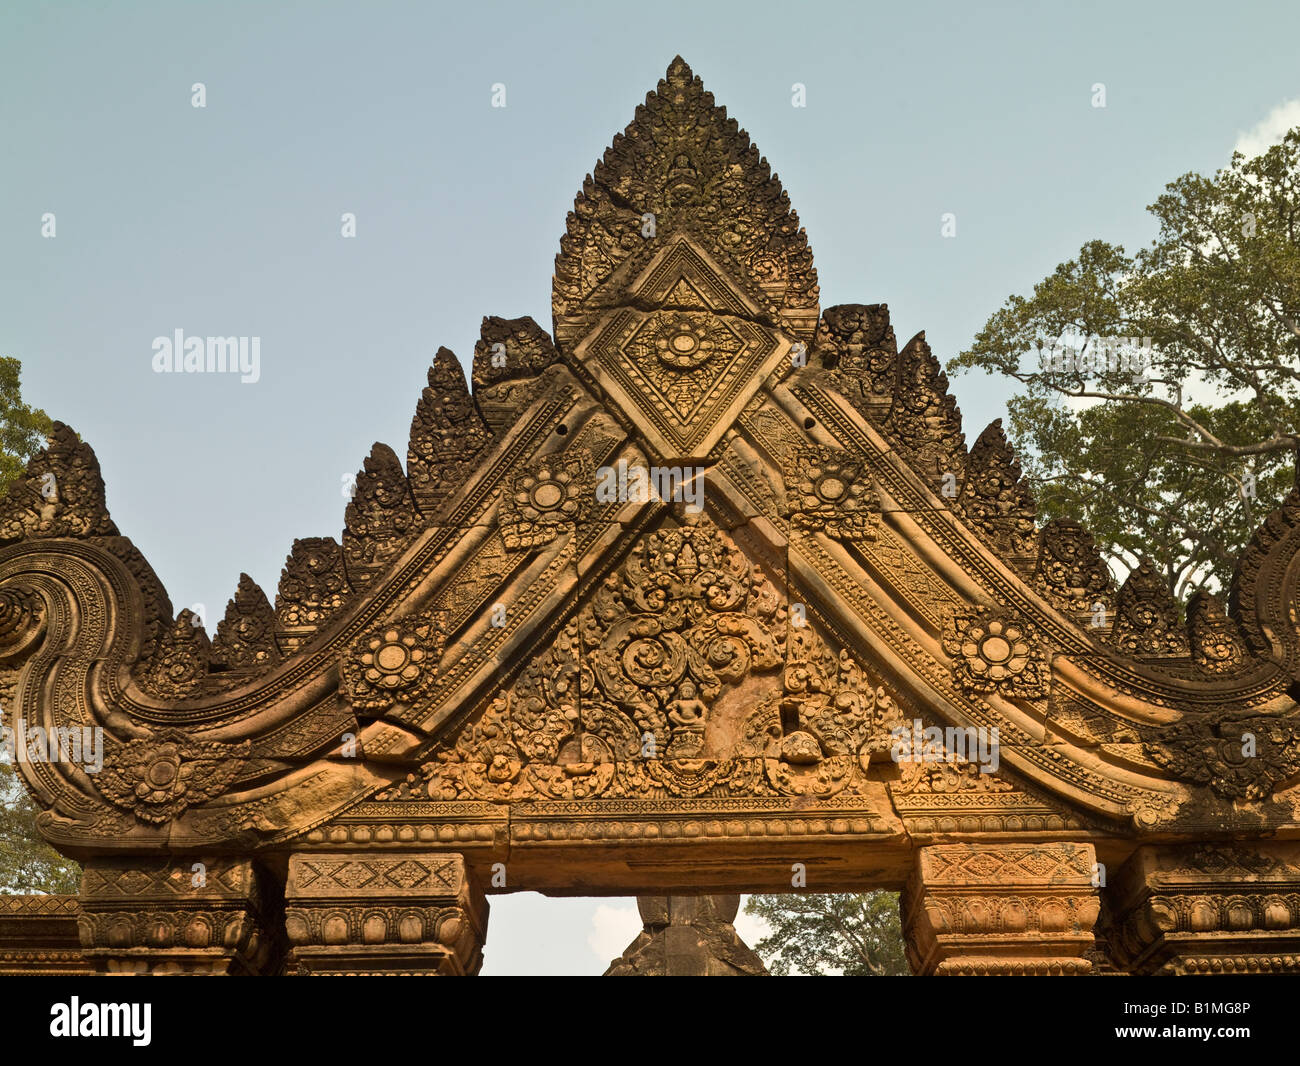 carved pediment, Banteay Srei (or Banteay Srey) temple, Angkor, Cambodia - Stock Image